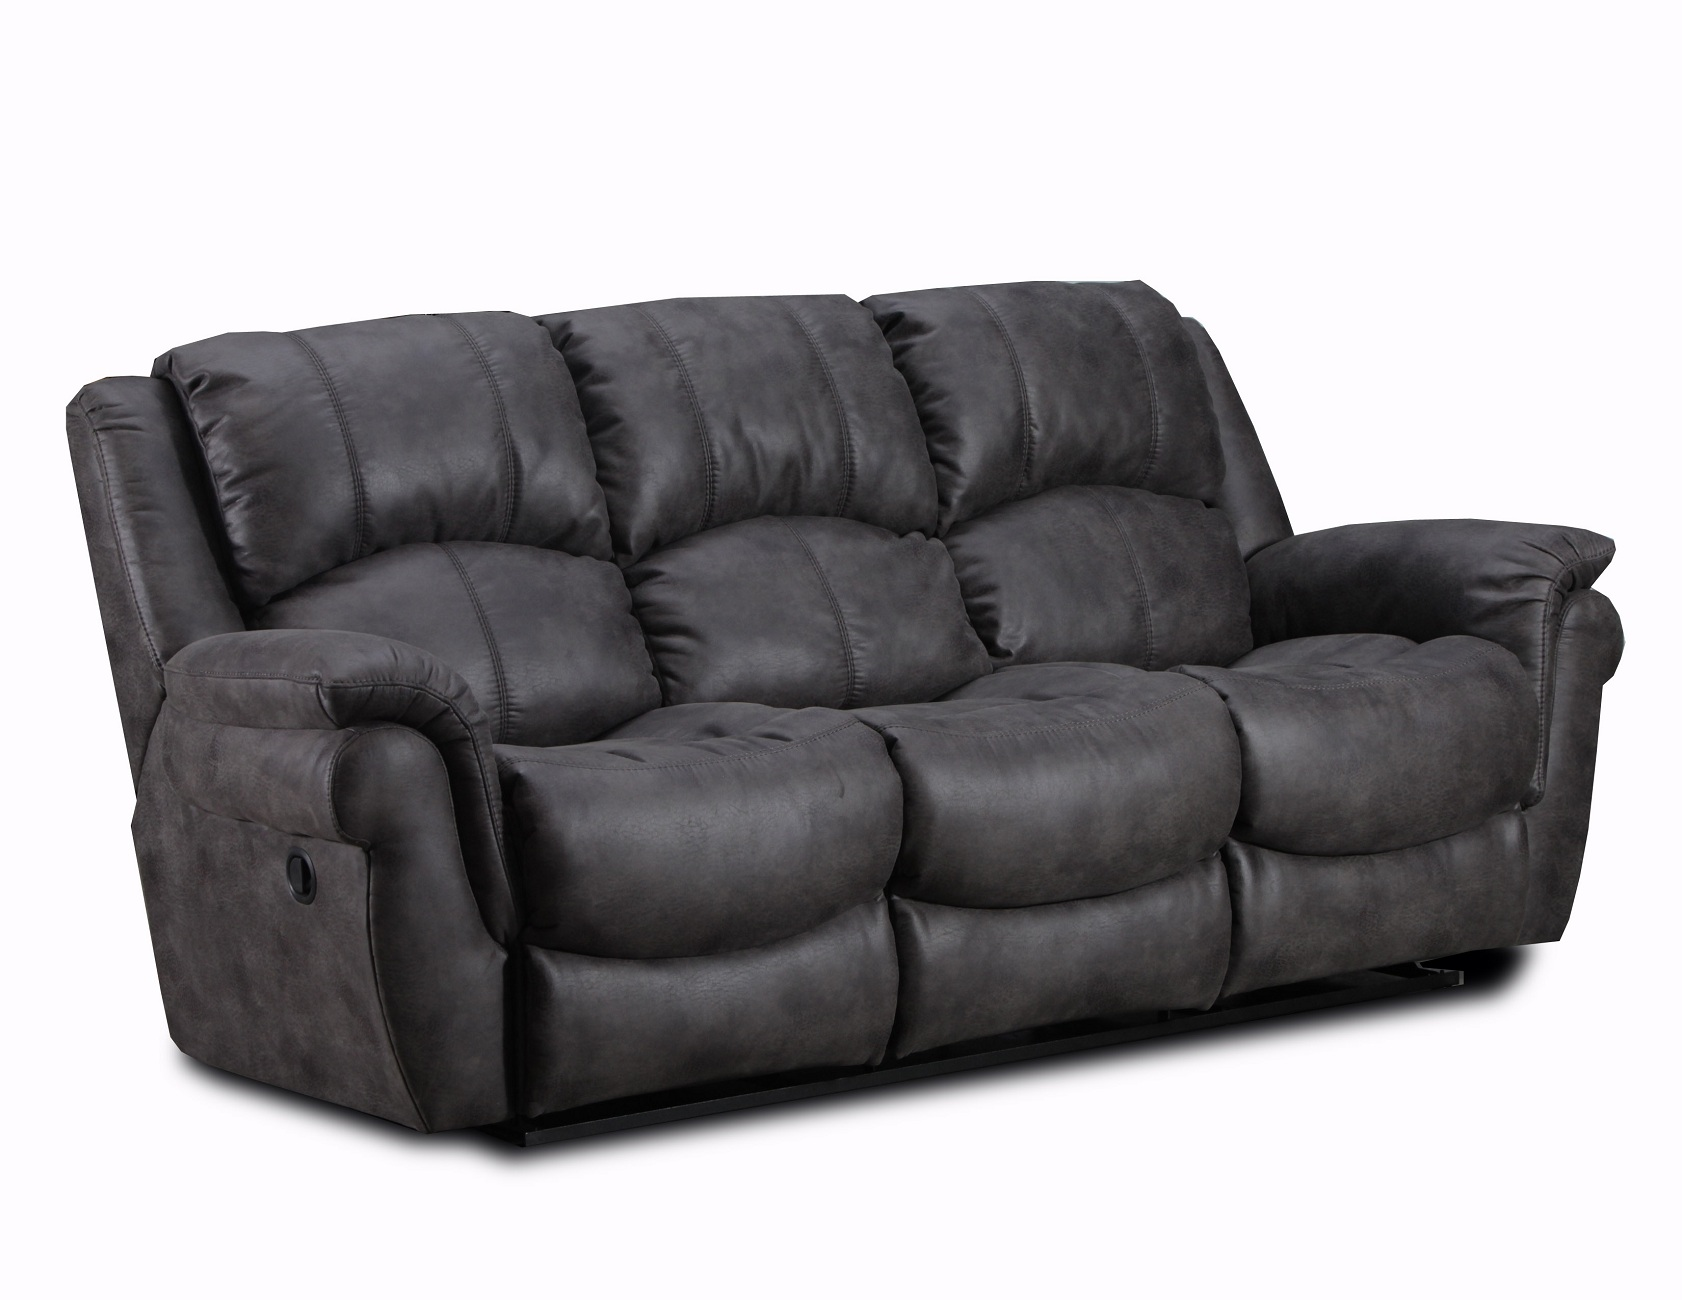 Bedford Reclining Sofa by Chelsea Home Furniture in Gunmetal